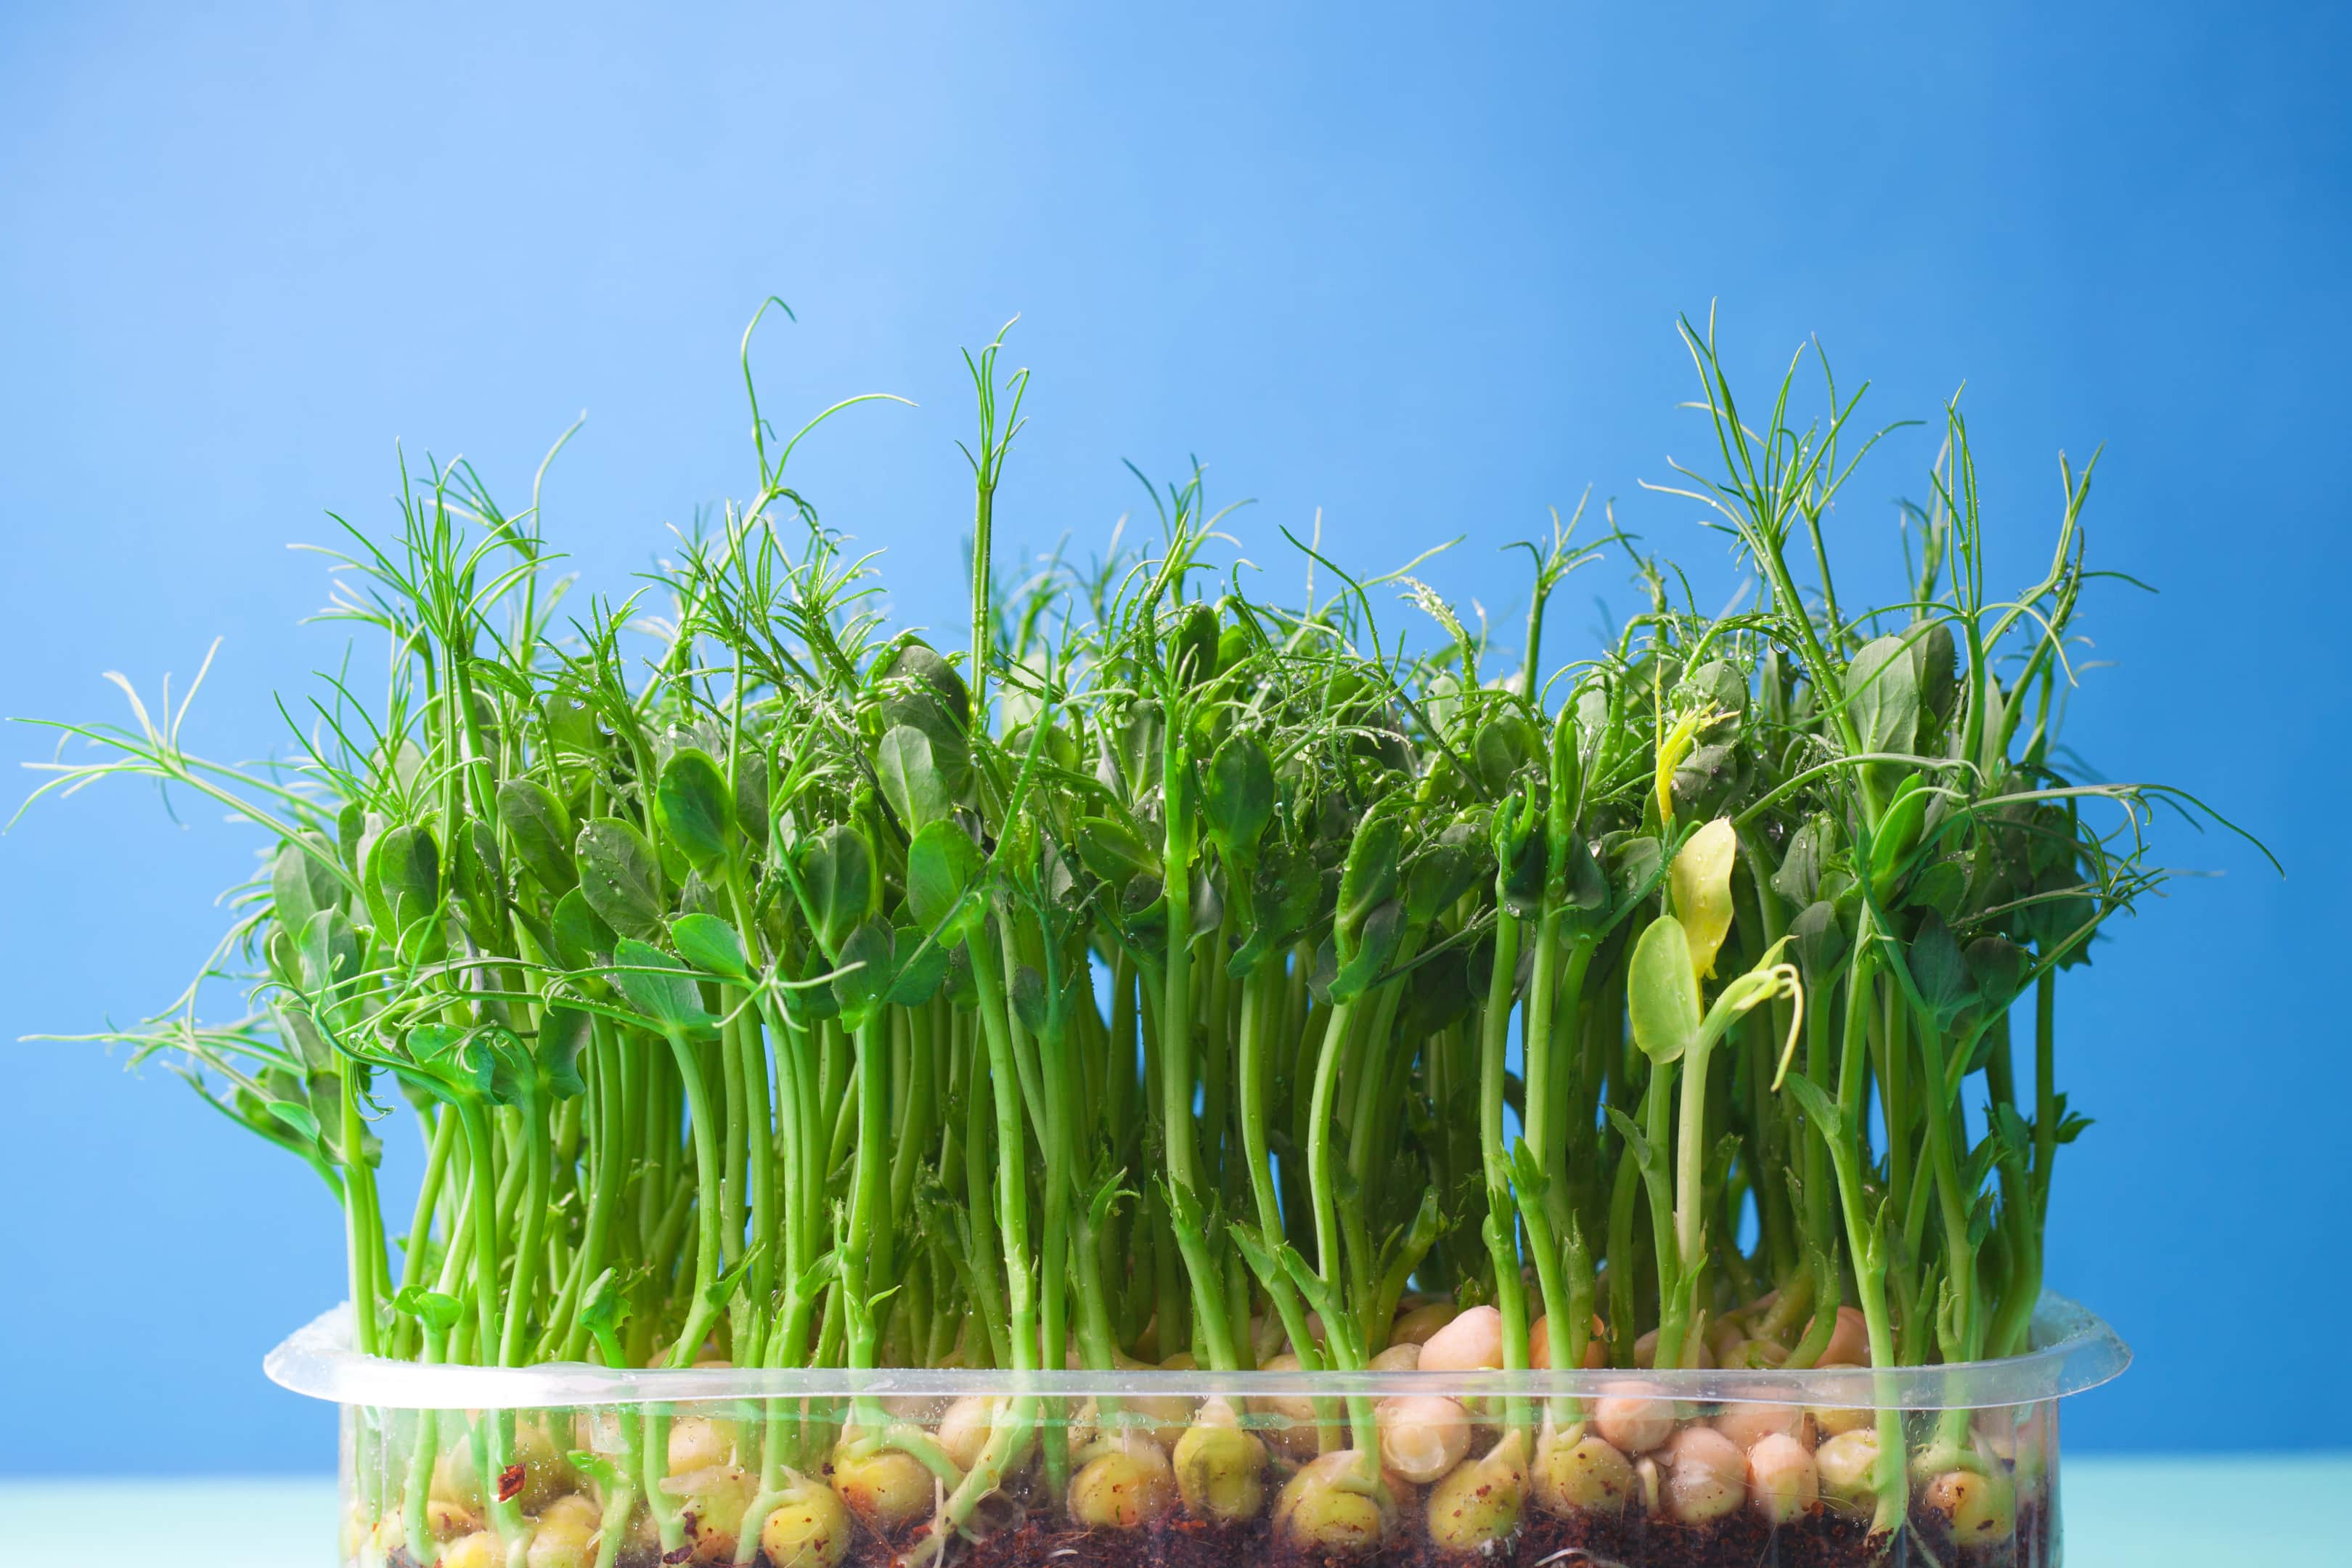 Pea shoots microgreen sprouts grown in plastic tray